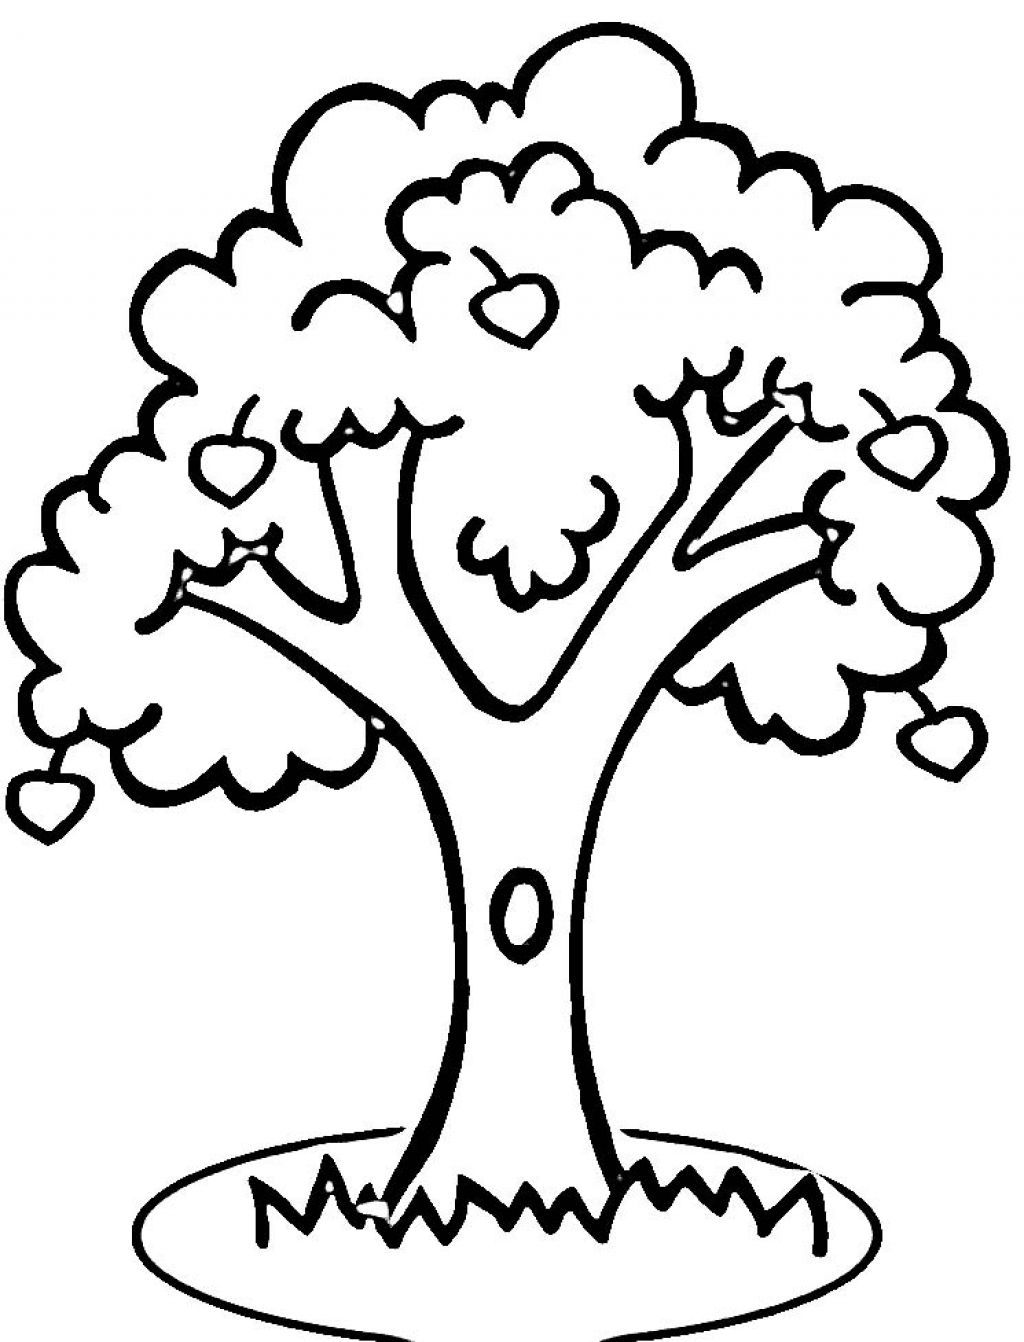 tree coloring pages coloring page for kids apple tree coloring home tree coloring pages